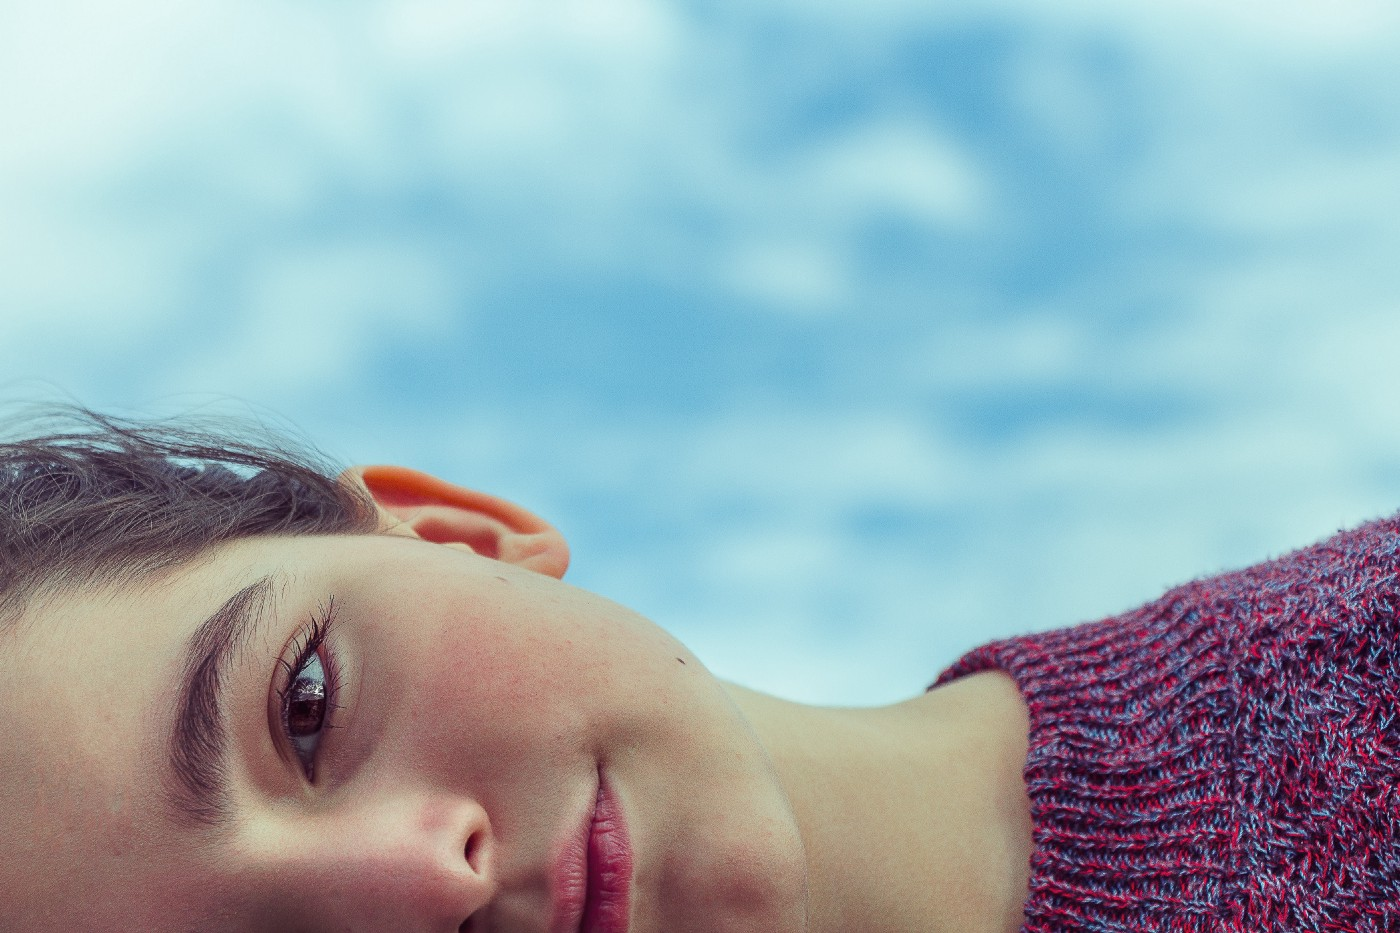 A young woman looks thoughtfully into the camera with a beautiful blue sky filled with fluffy white clouds behind her.